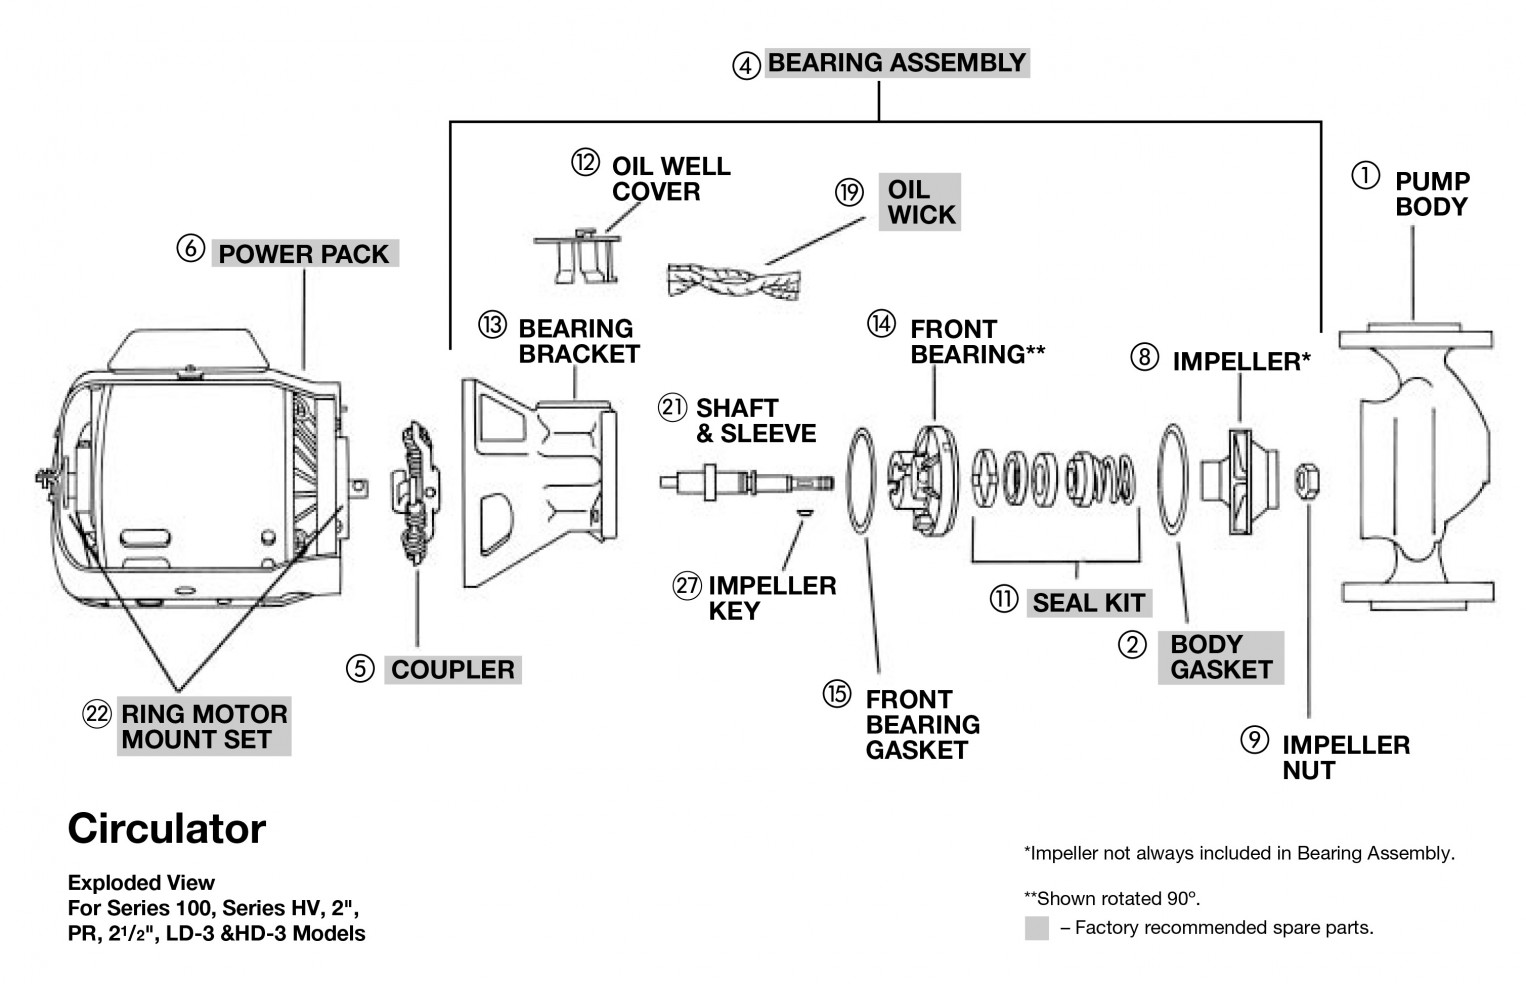 Bell Gossett Wiring Diagram - Wiring Diagrams on cat5 diagram, 12v diesel fuel schematics diagram, rj45 connector diagram, mazda tribute cruise control harness diagram, secondary ignition pickup sensor probe schematic diagram, mazda 6 throttle connection diagram,